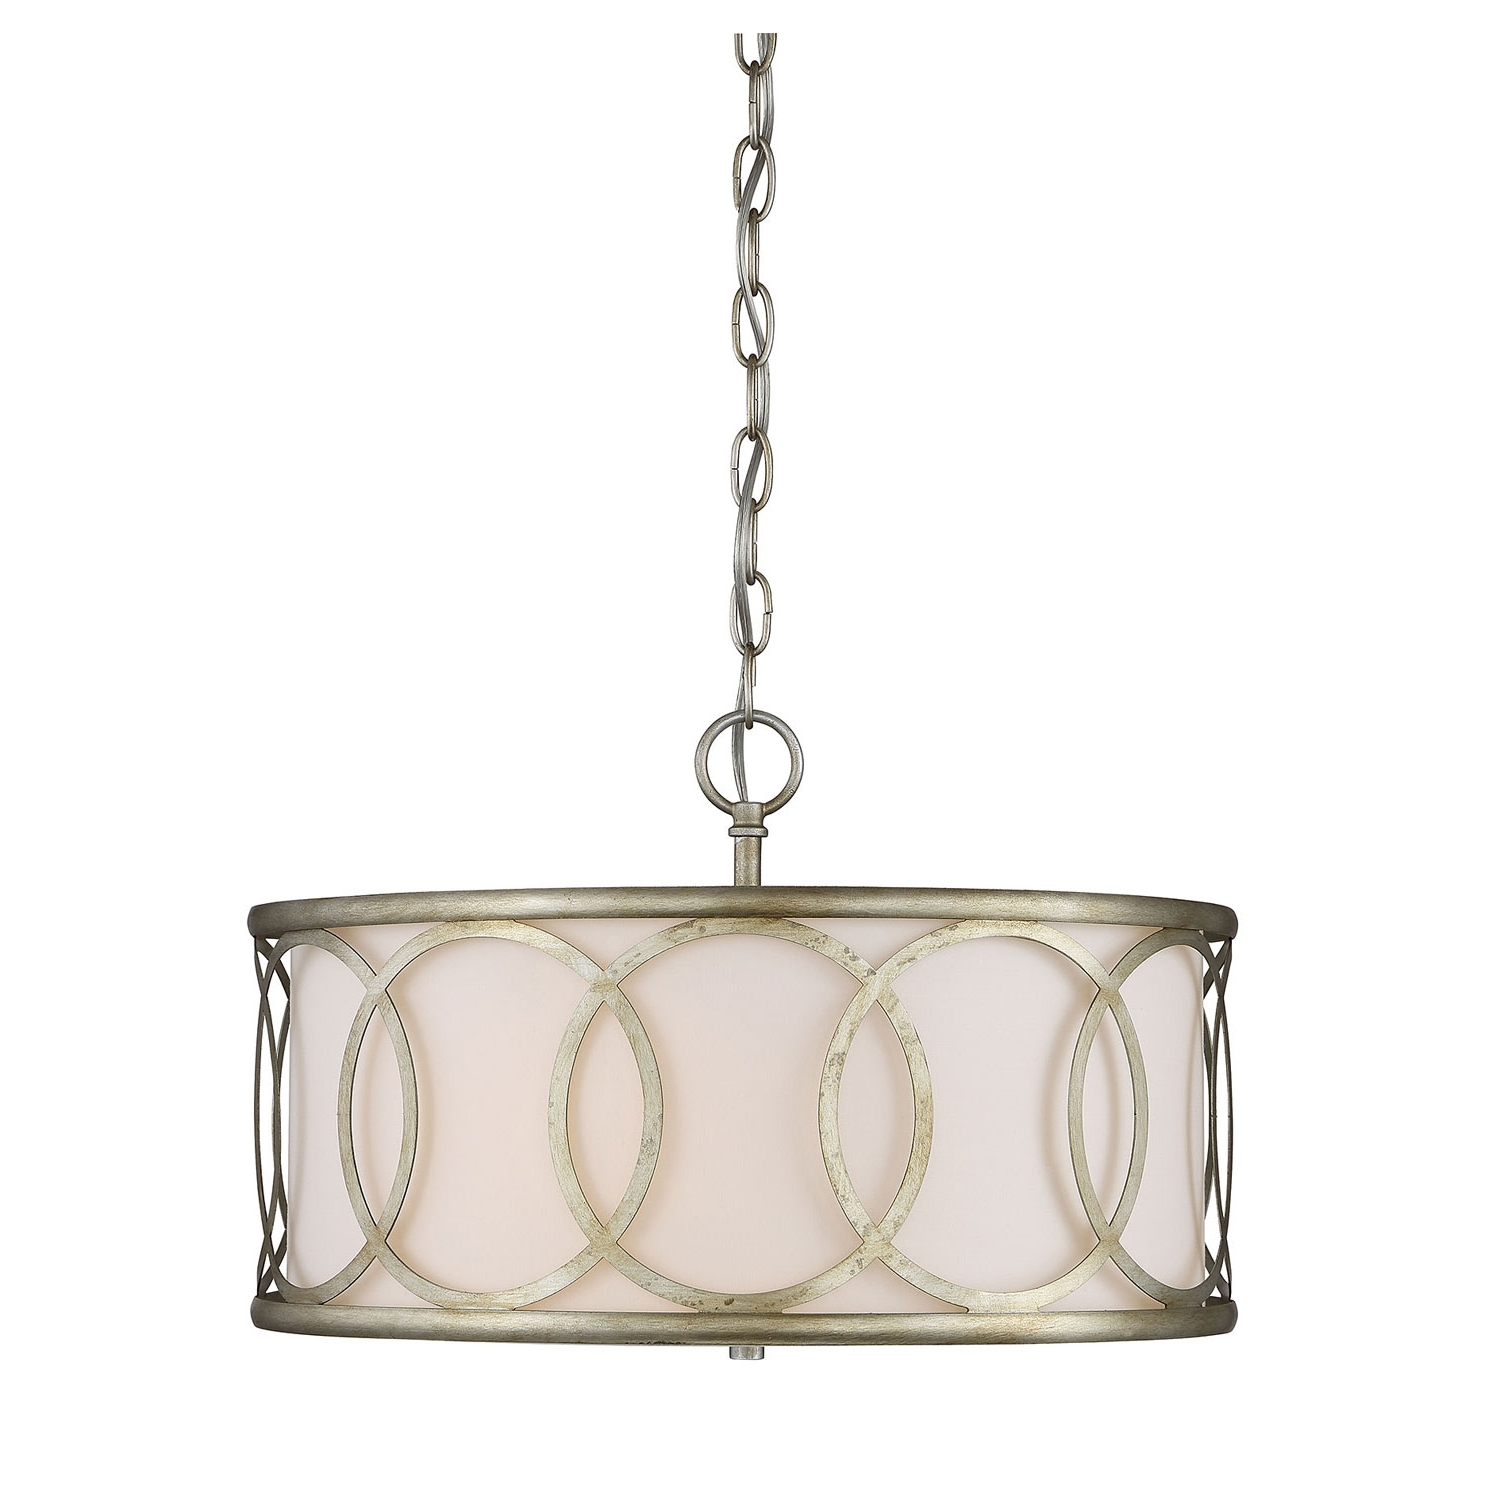 Metal Drum Chandeliers In Well Known 251 First Linden Argentum Three Light Drum Pendant On Sale (View 11 of 20)